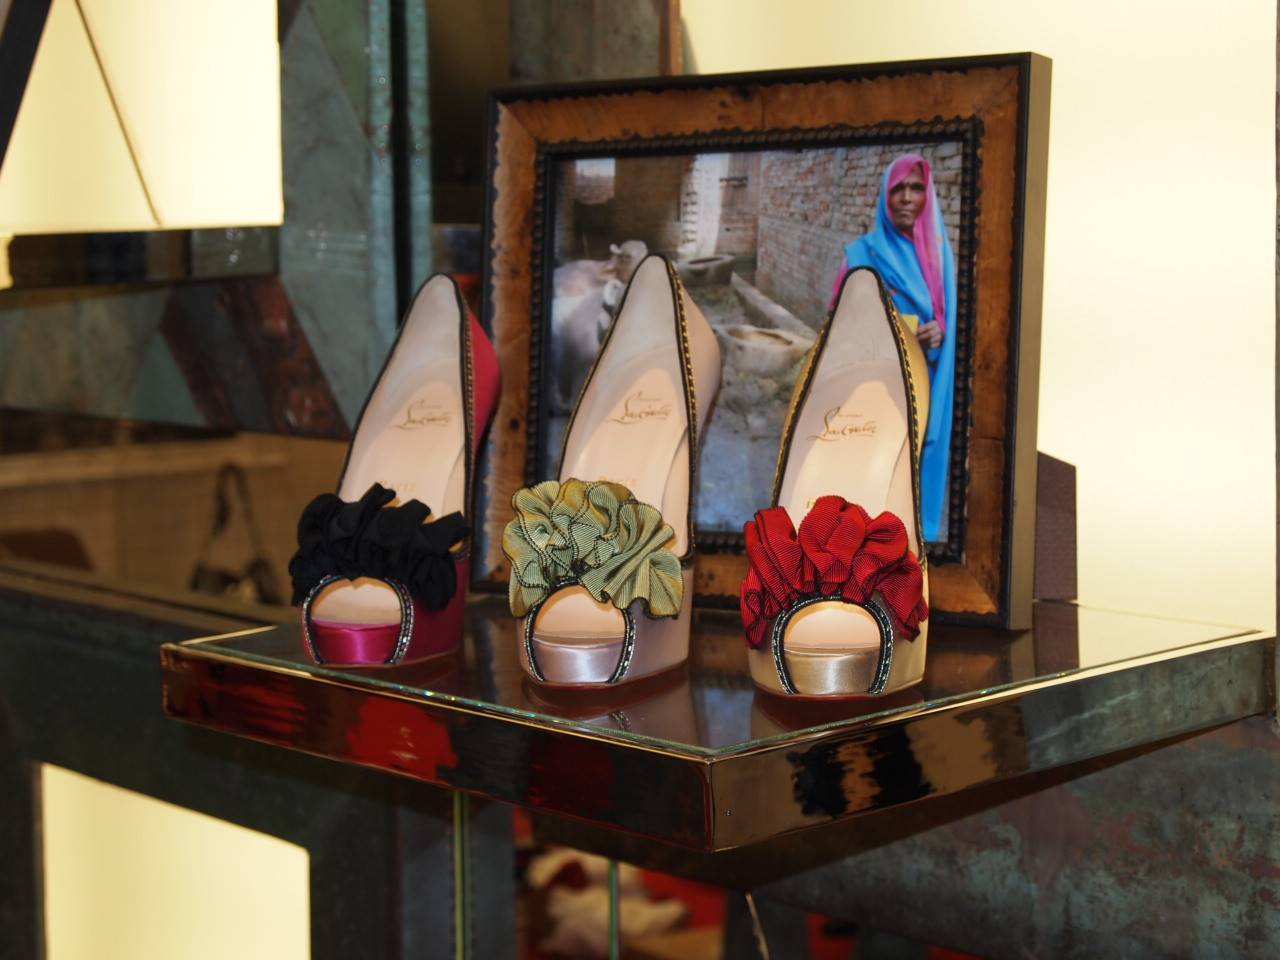 d9a84f4f Christian Louboutin creates literally uplifting shoes with his vivacious red  soled stilletos. However this season he created a limited shoe where  purchasing ...